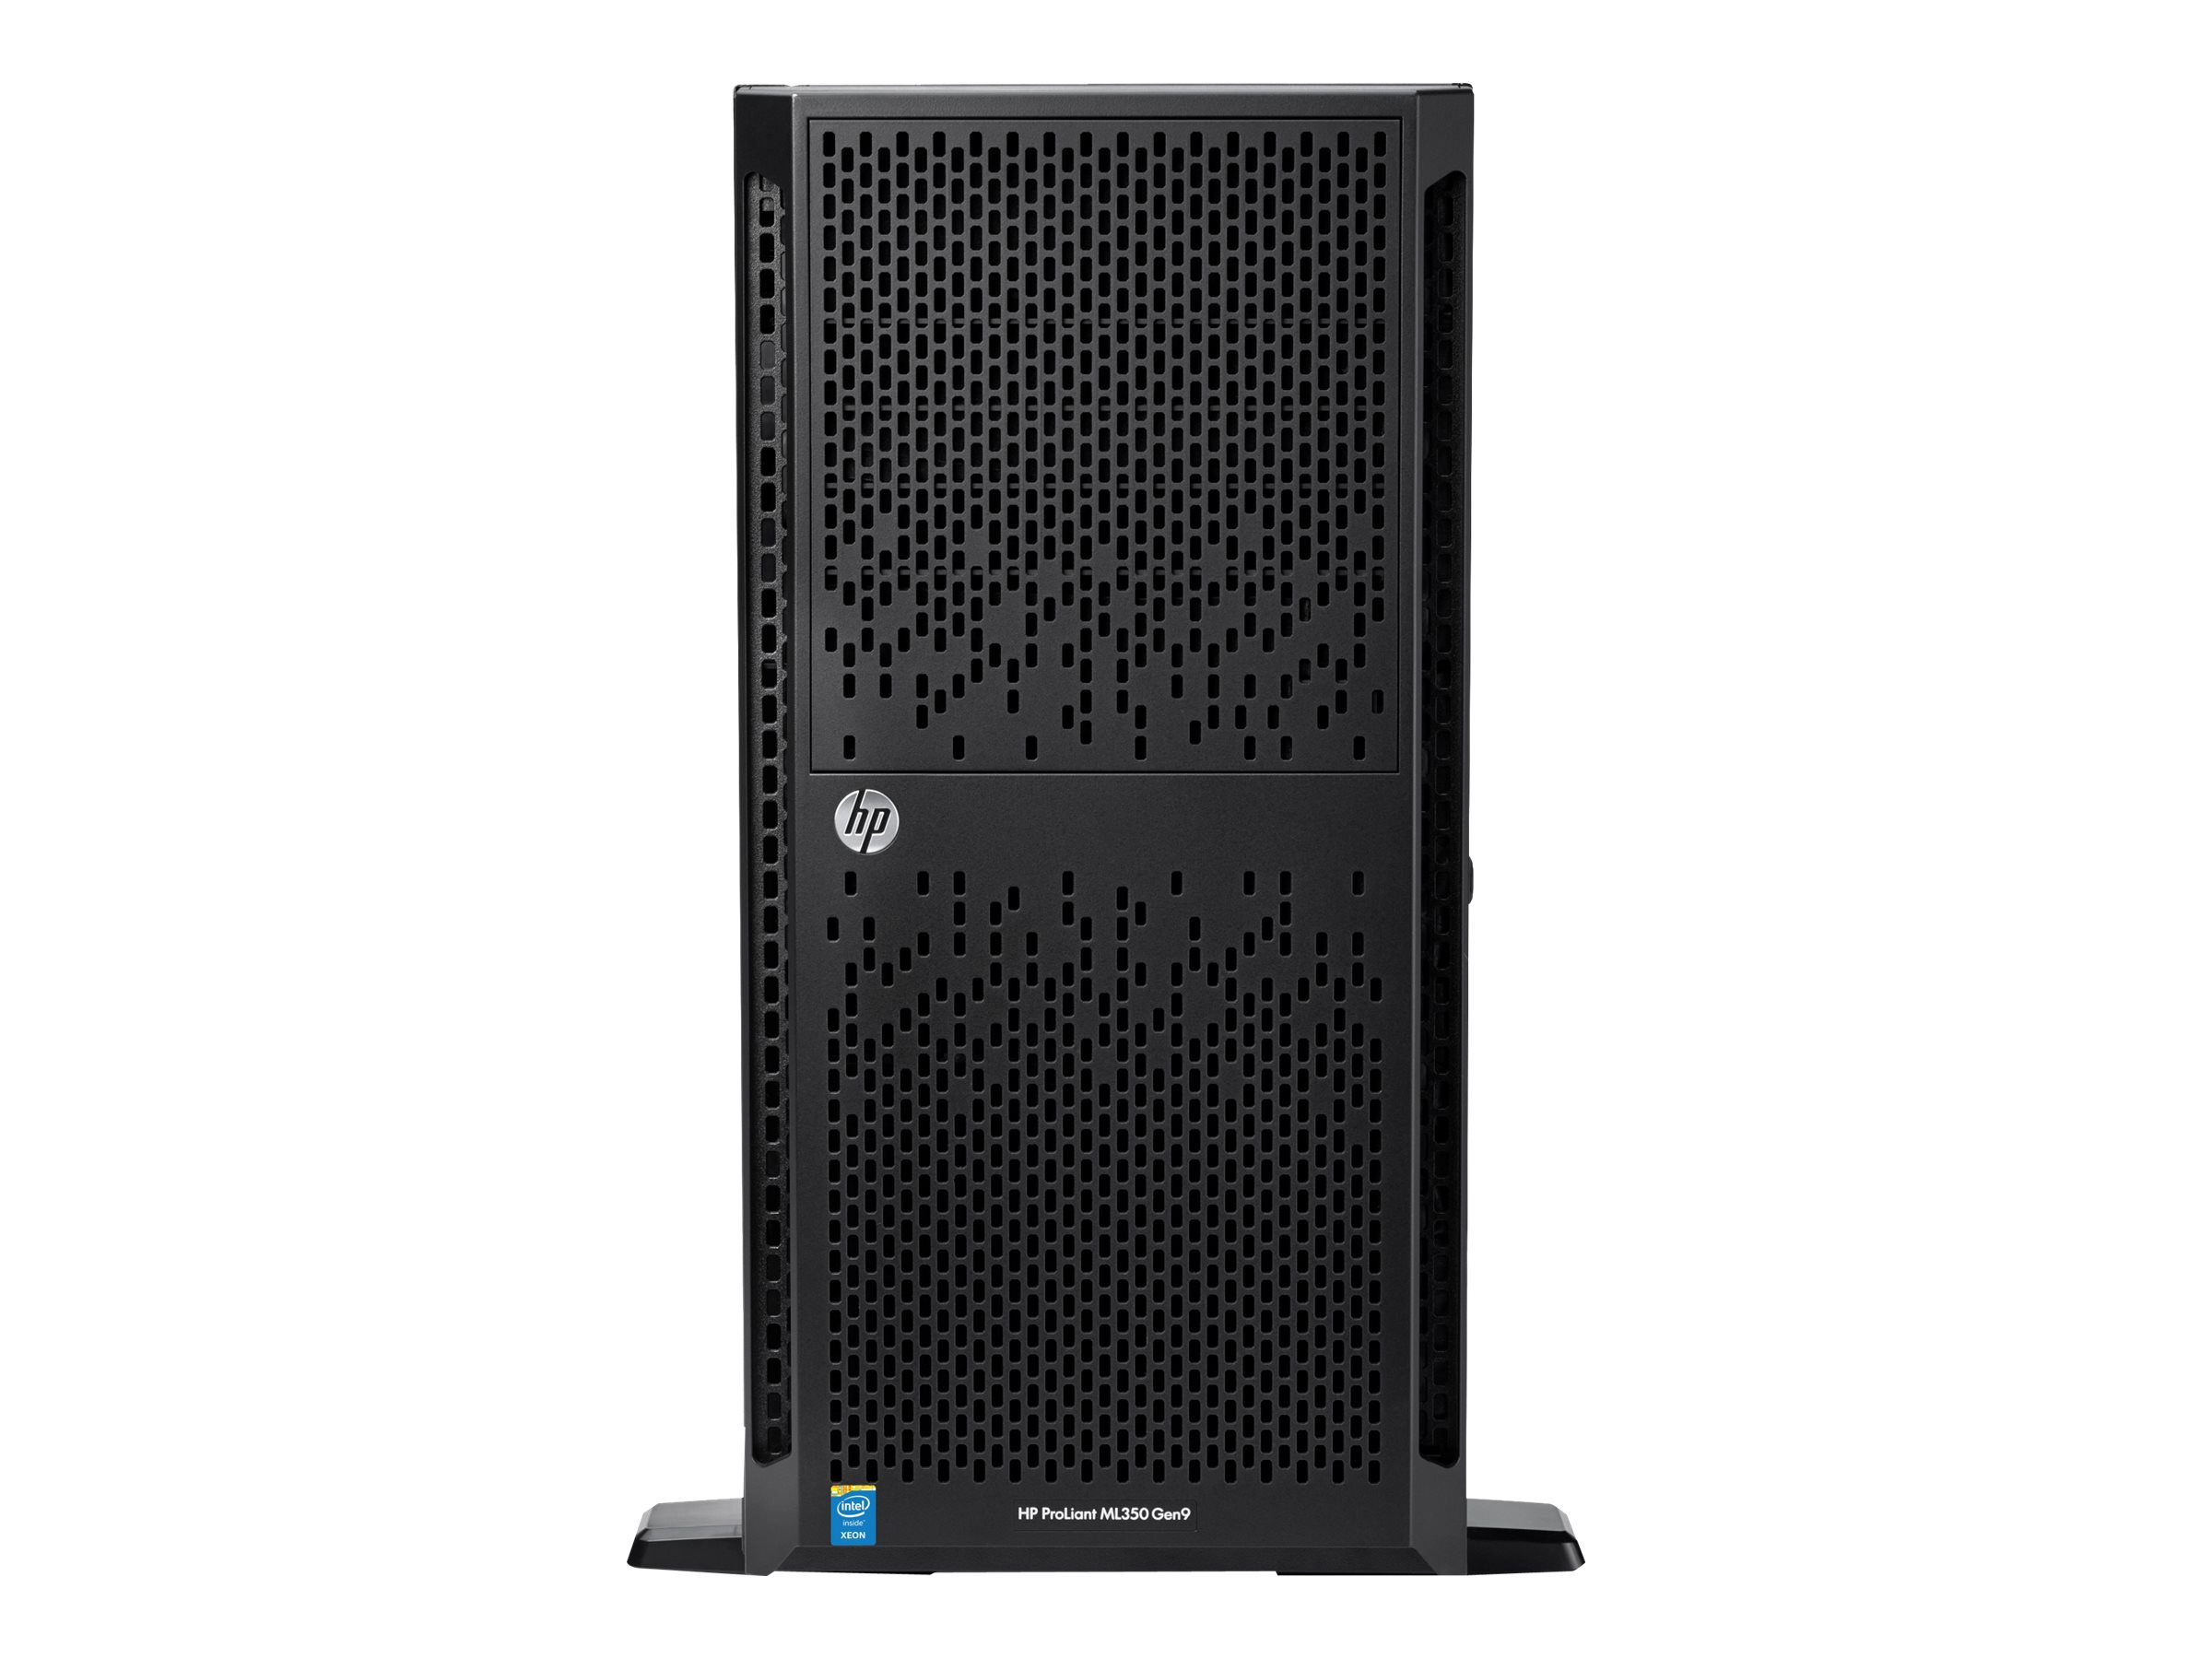 HPE ProLiant ML350 Gen9 Base - Server - Tower - 5U - zweiweg - 1 x Xeon E5-2620V4 / 2.1 GHz